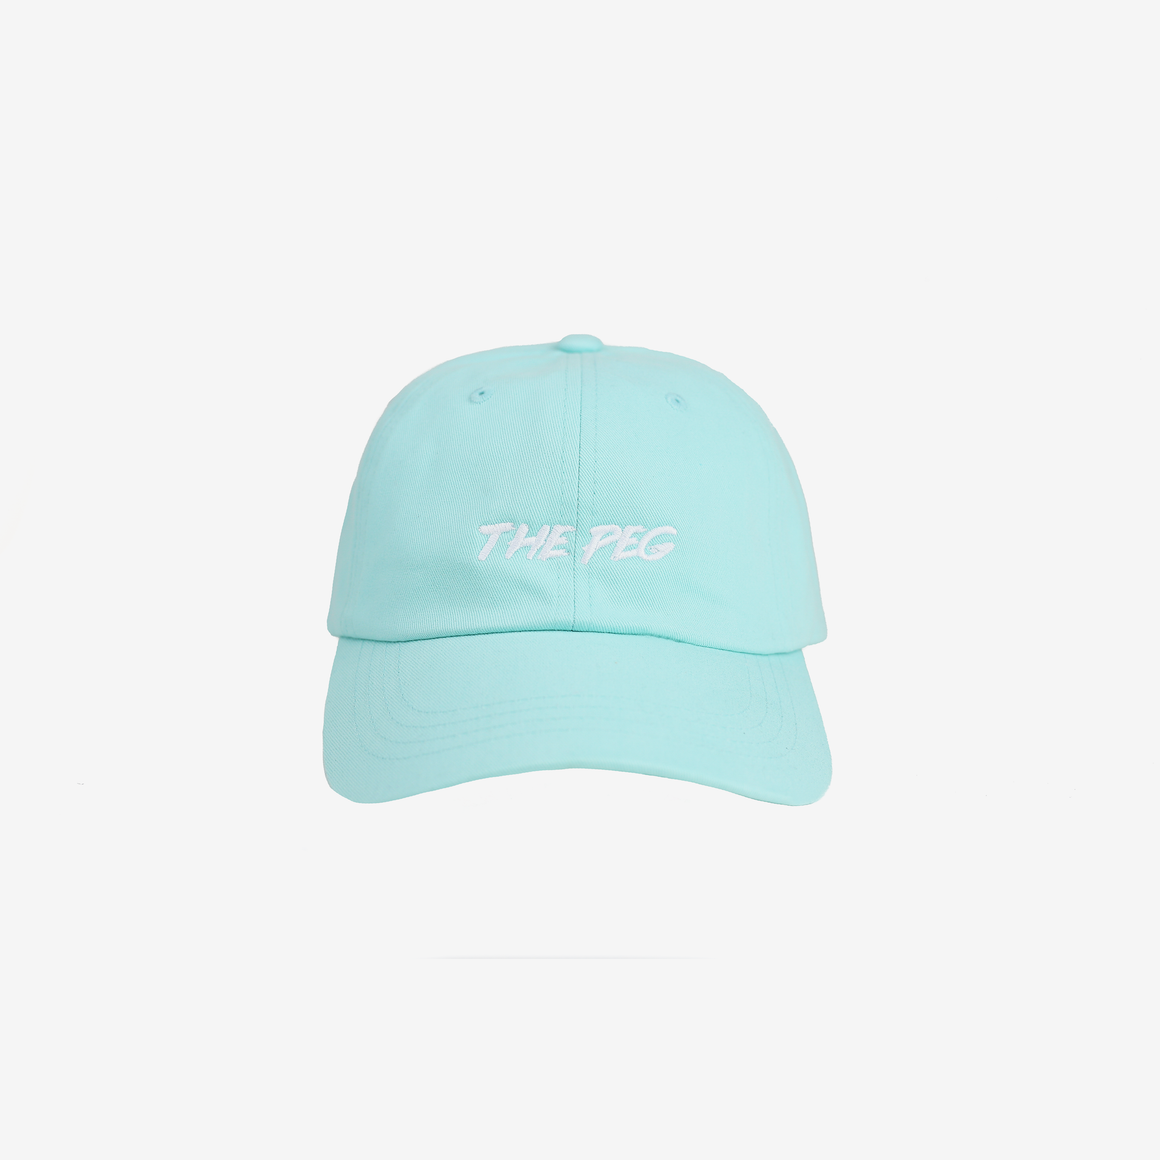 Paintbrush Dad Cap (Mint/White)